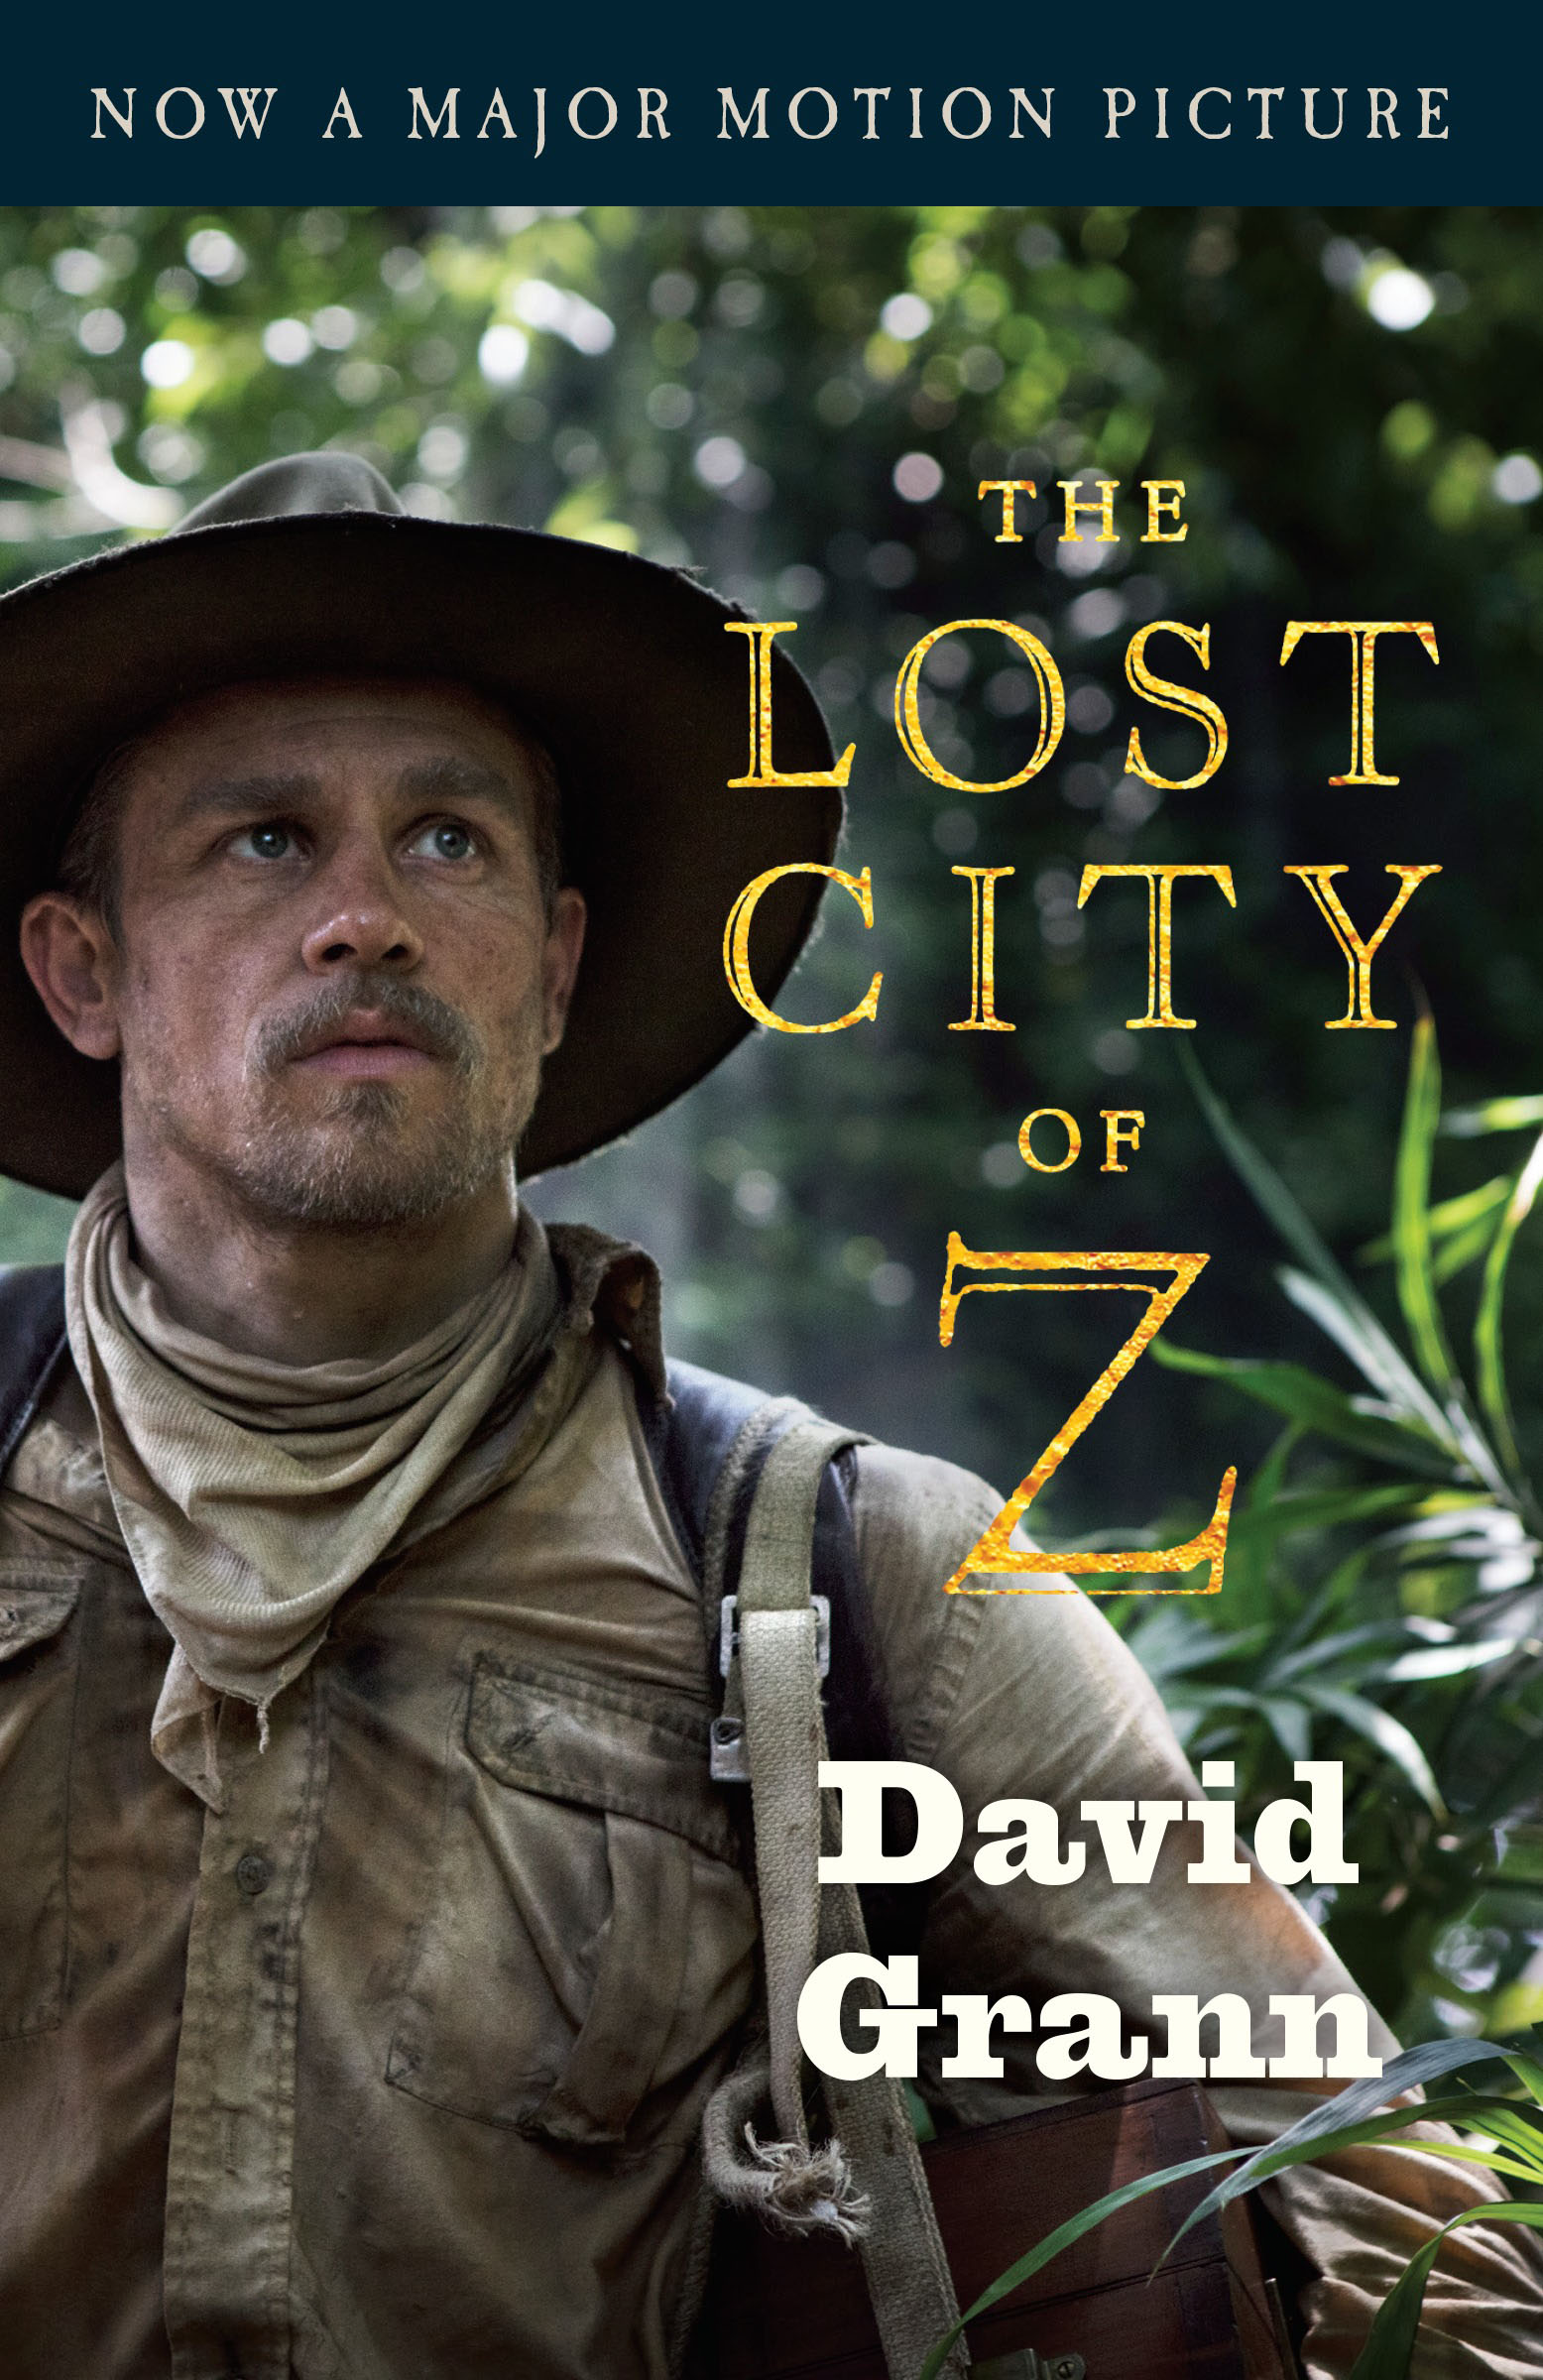 The Lost City of Z proust marcel in search of lost time volume iii